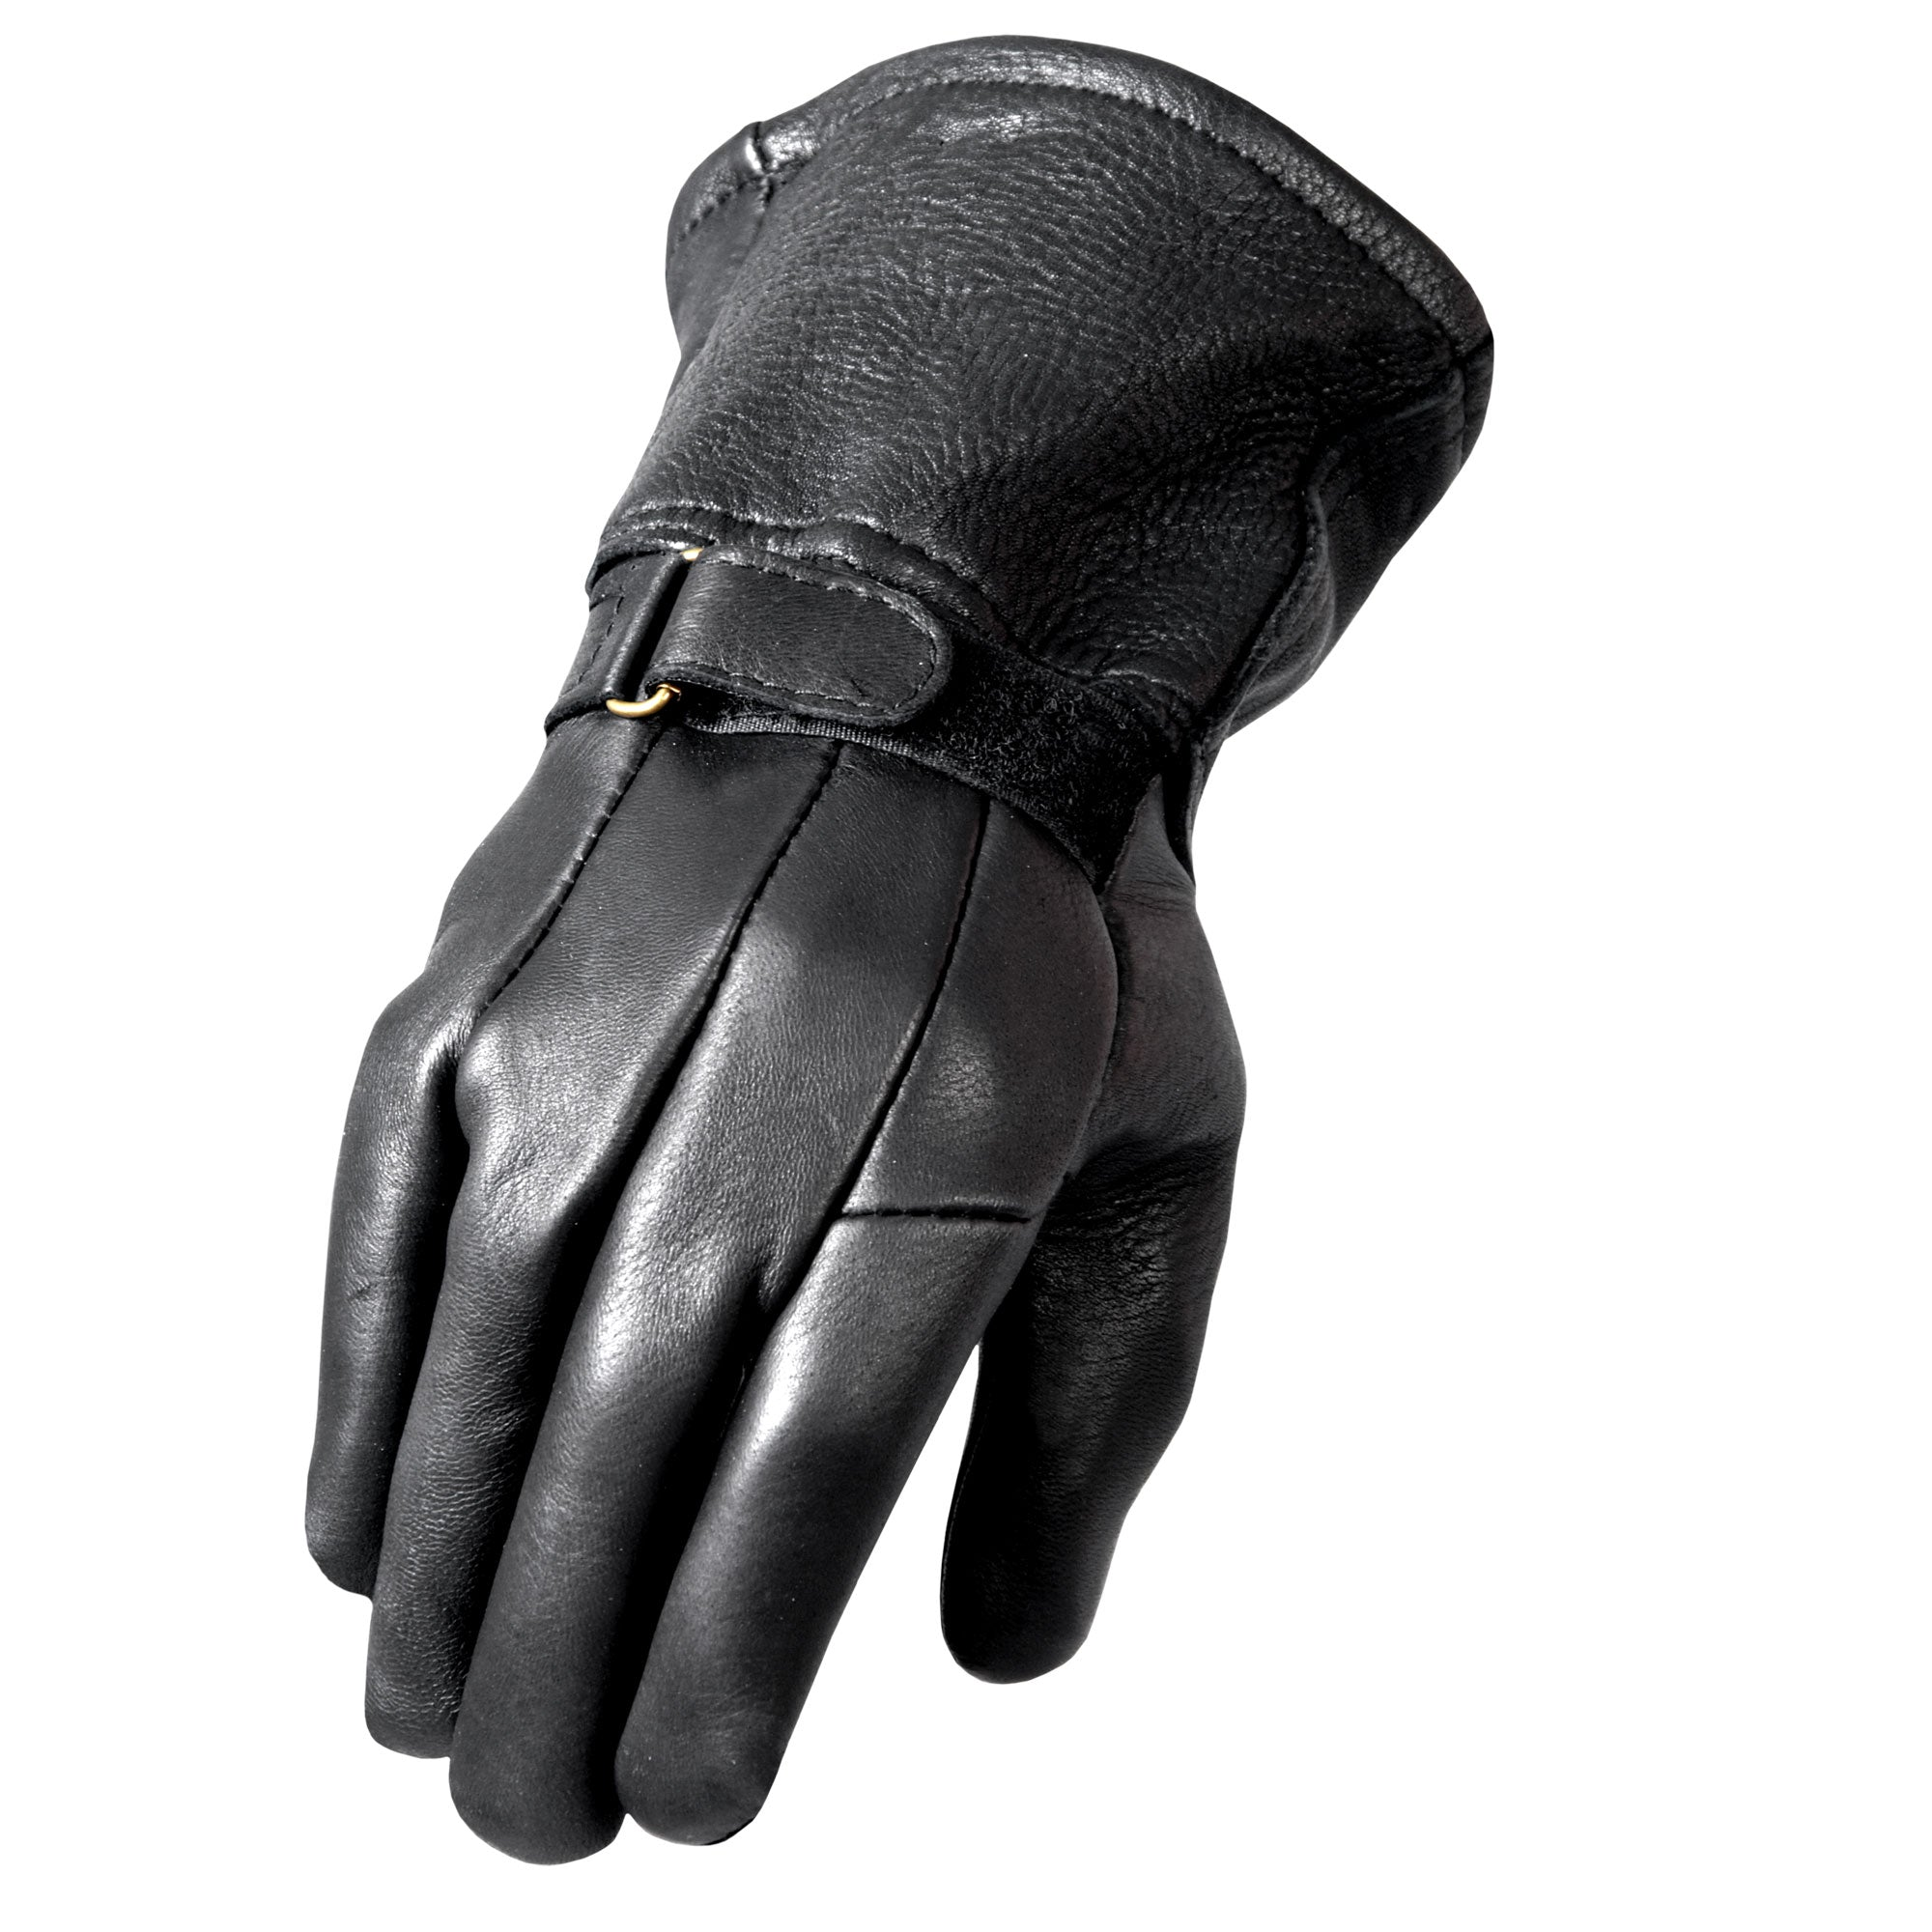 Hot Leathers GVD1003 Classic Deerskin Thinsulate Lining Gauntlet Glove